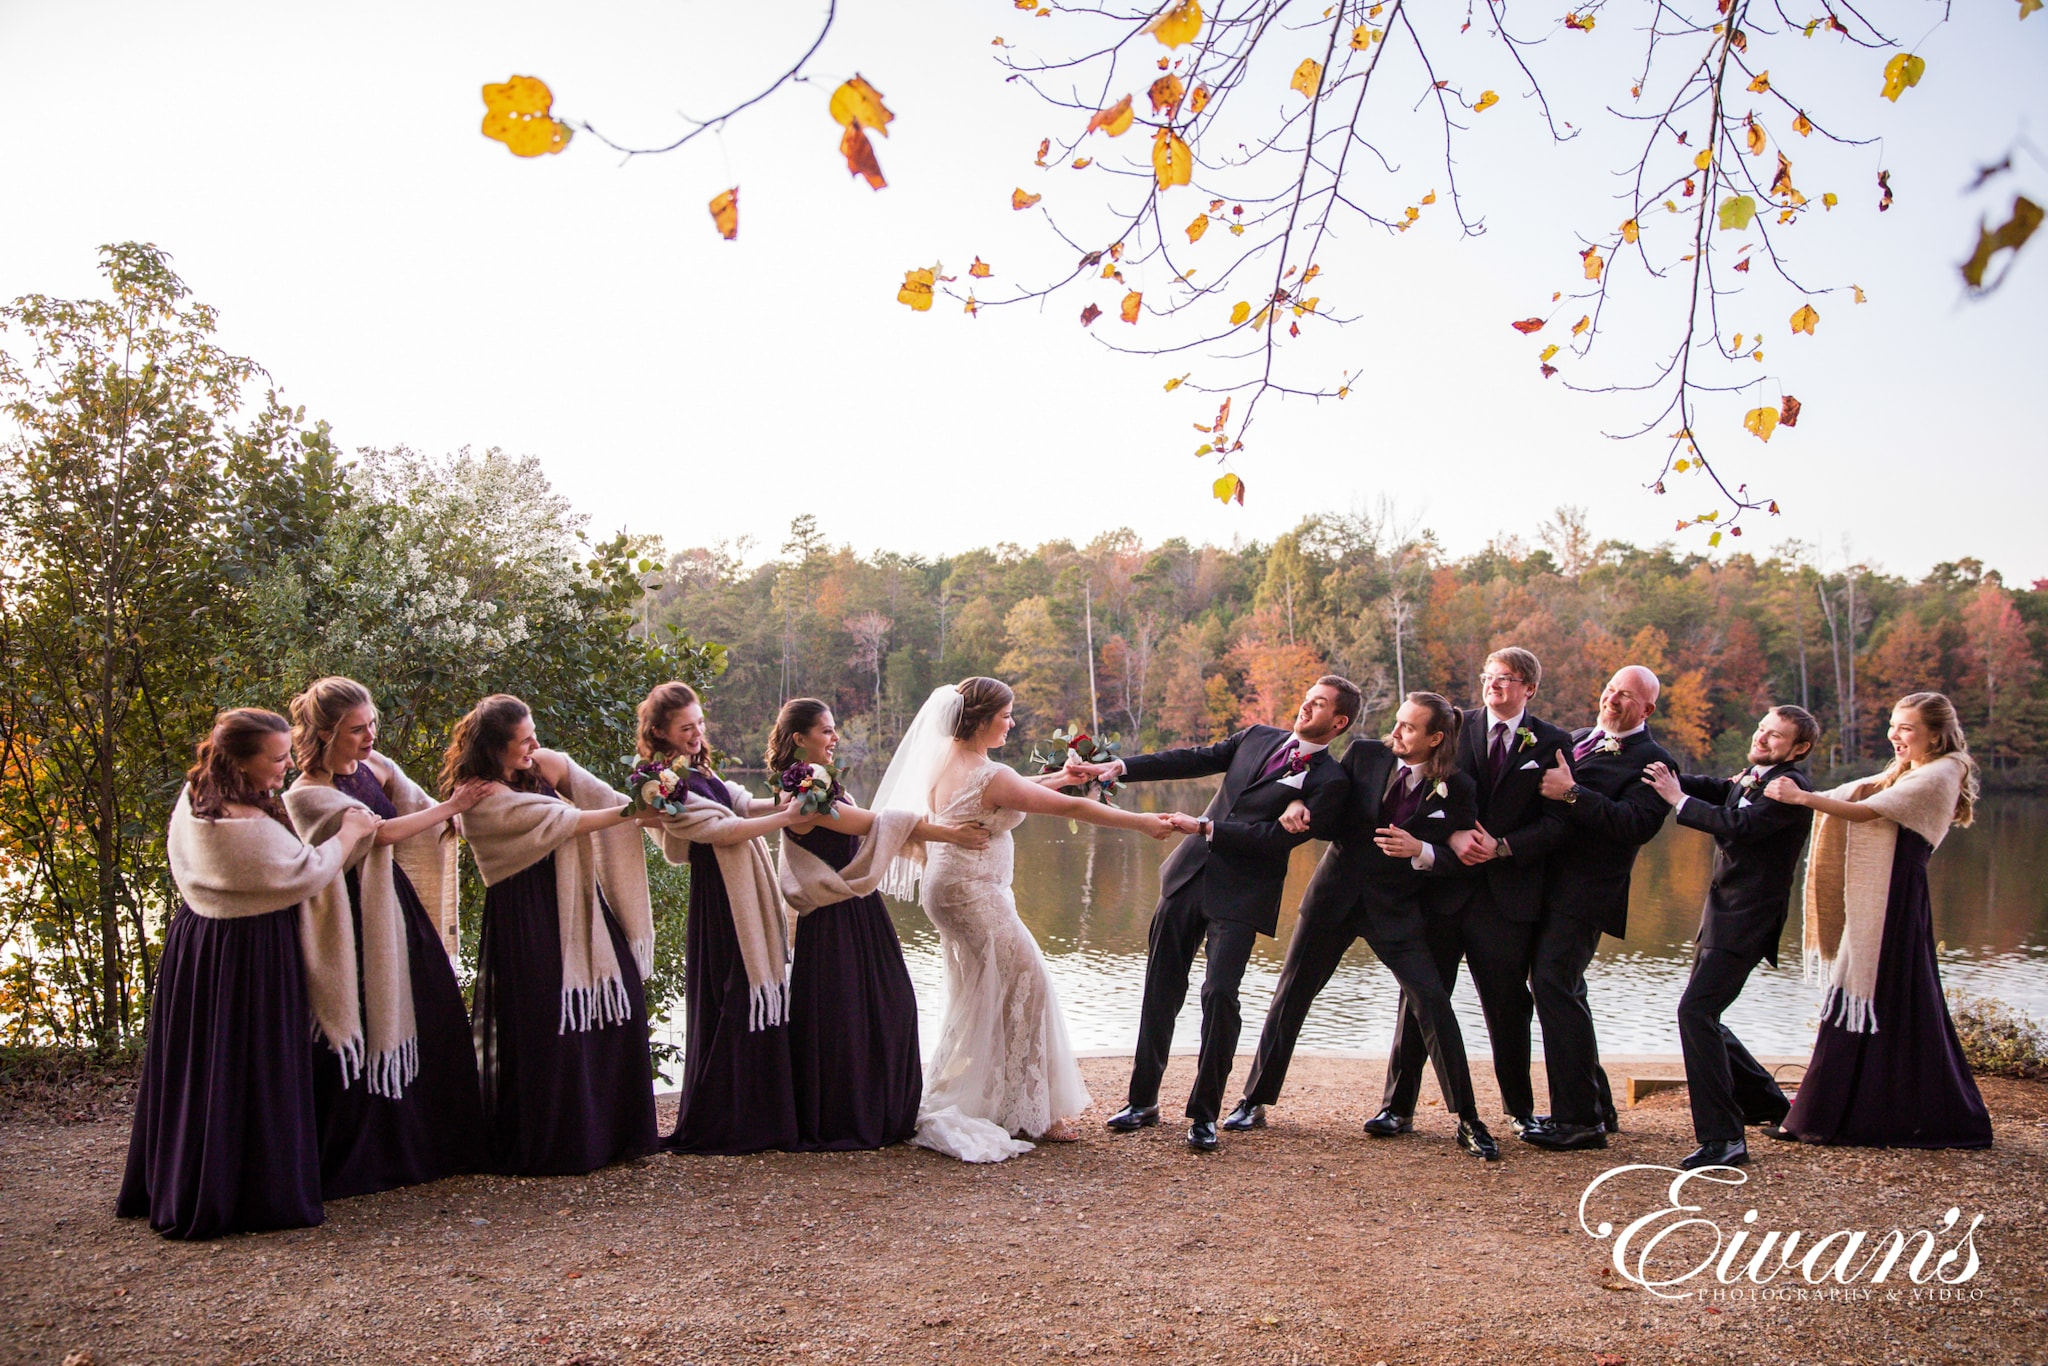 image of wedding party playing tug of war with the newlyweds